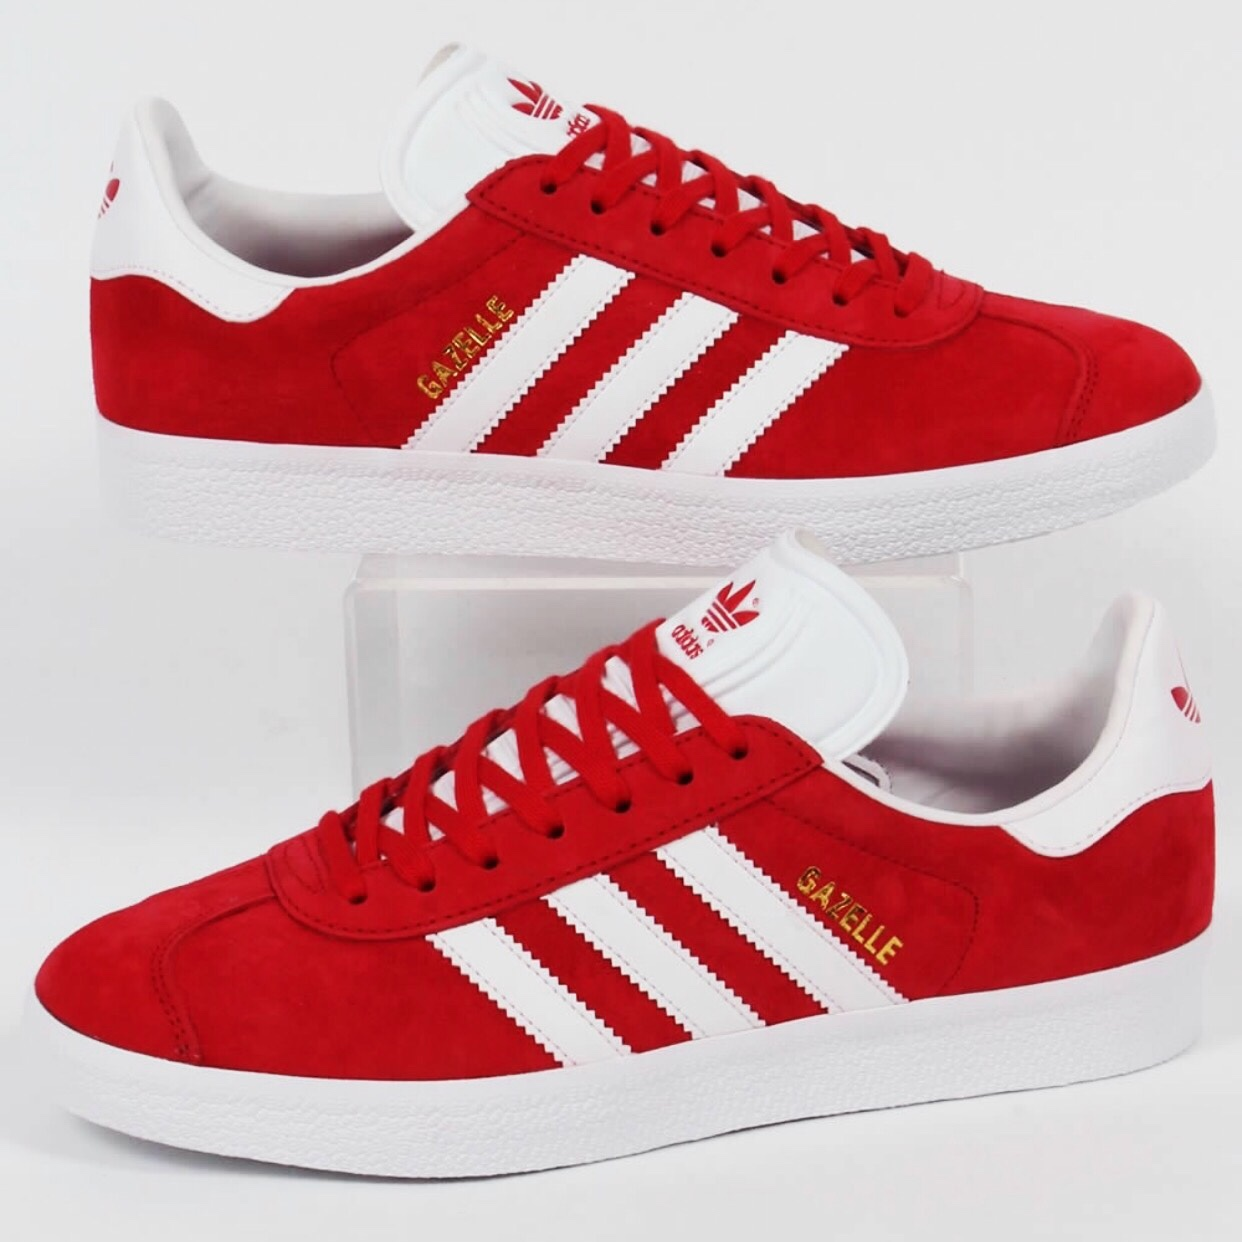 Size 7.5 Adidas Gazelle Trainers in Red